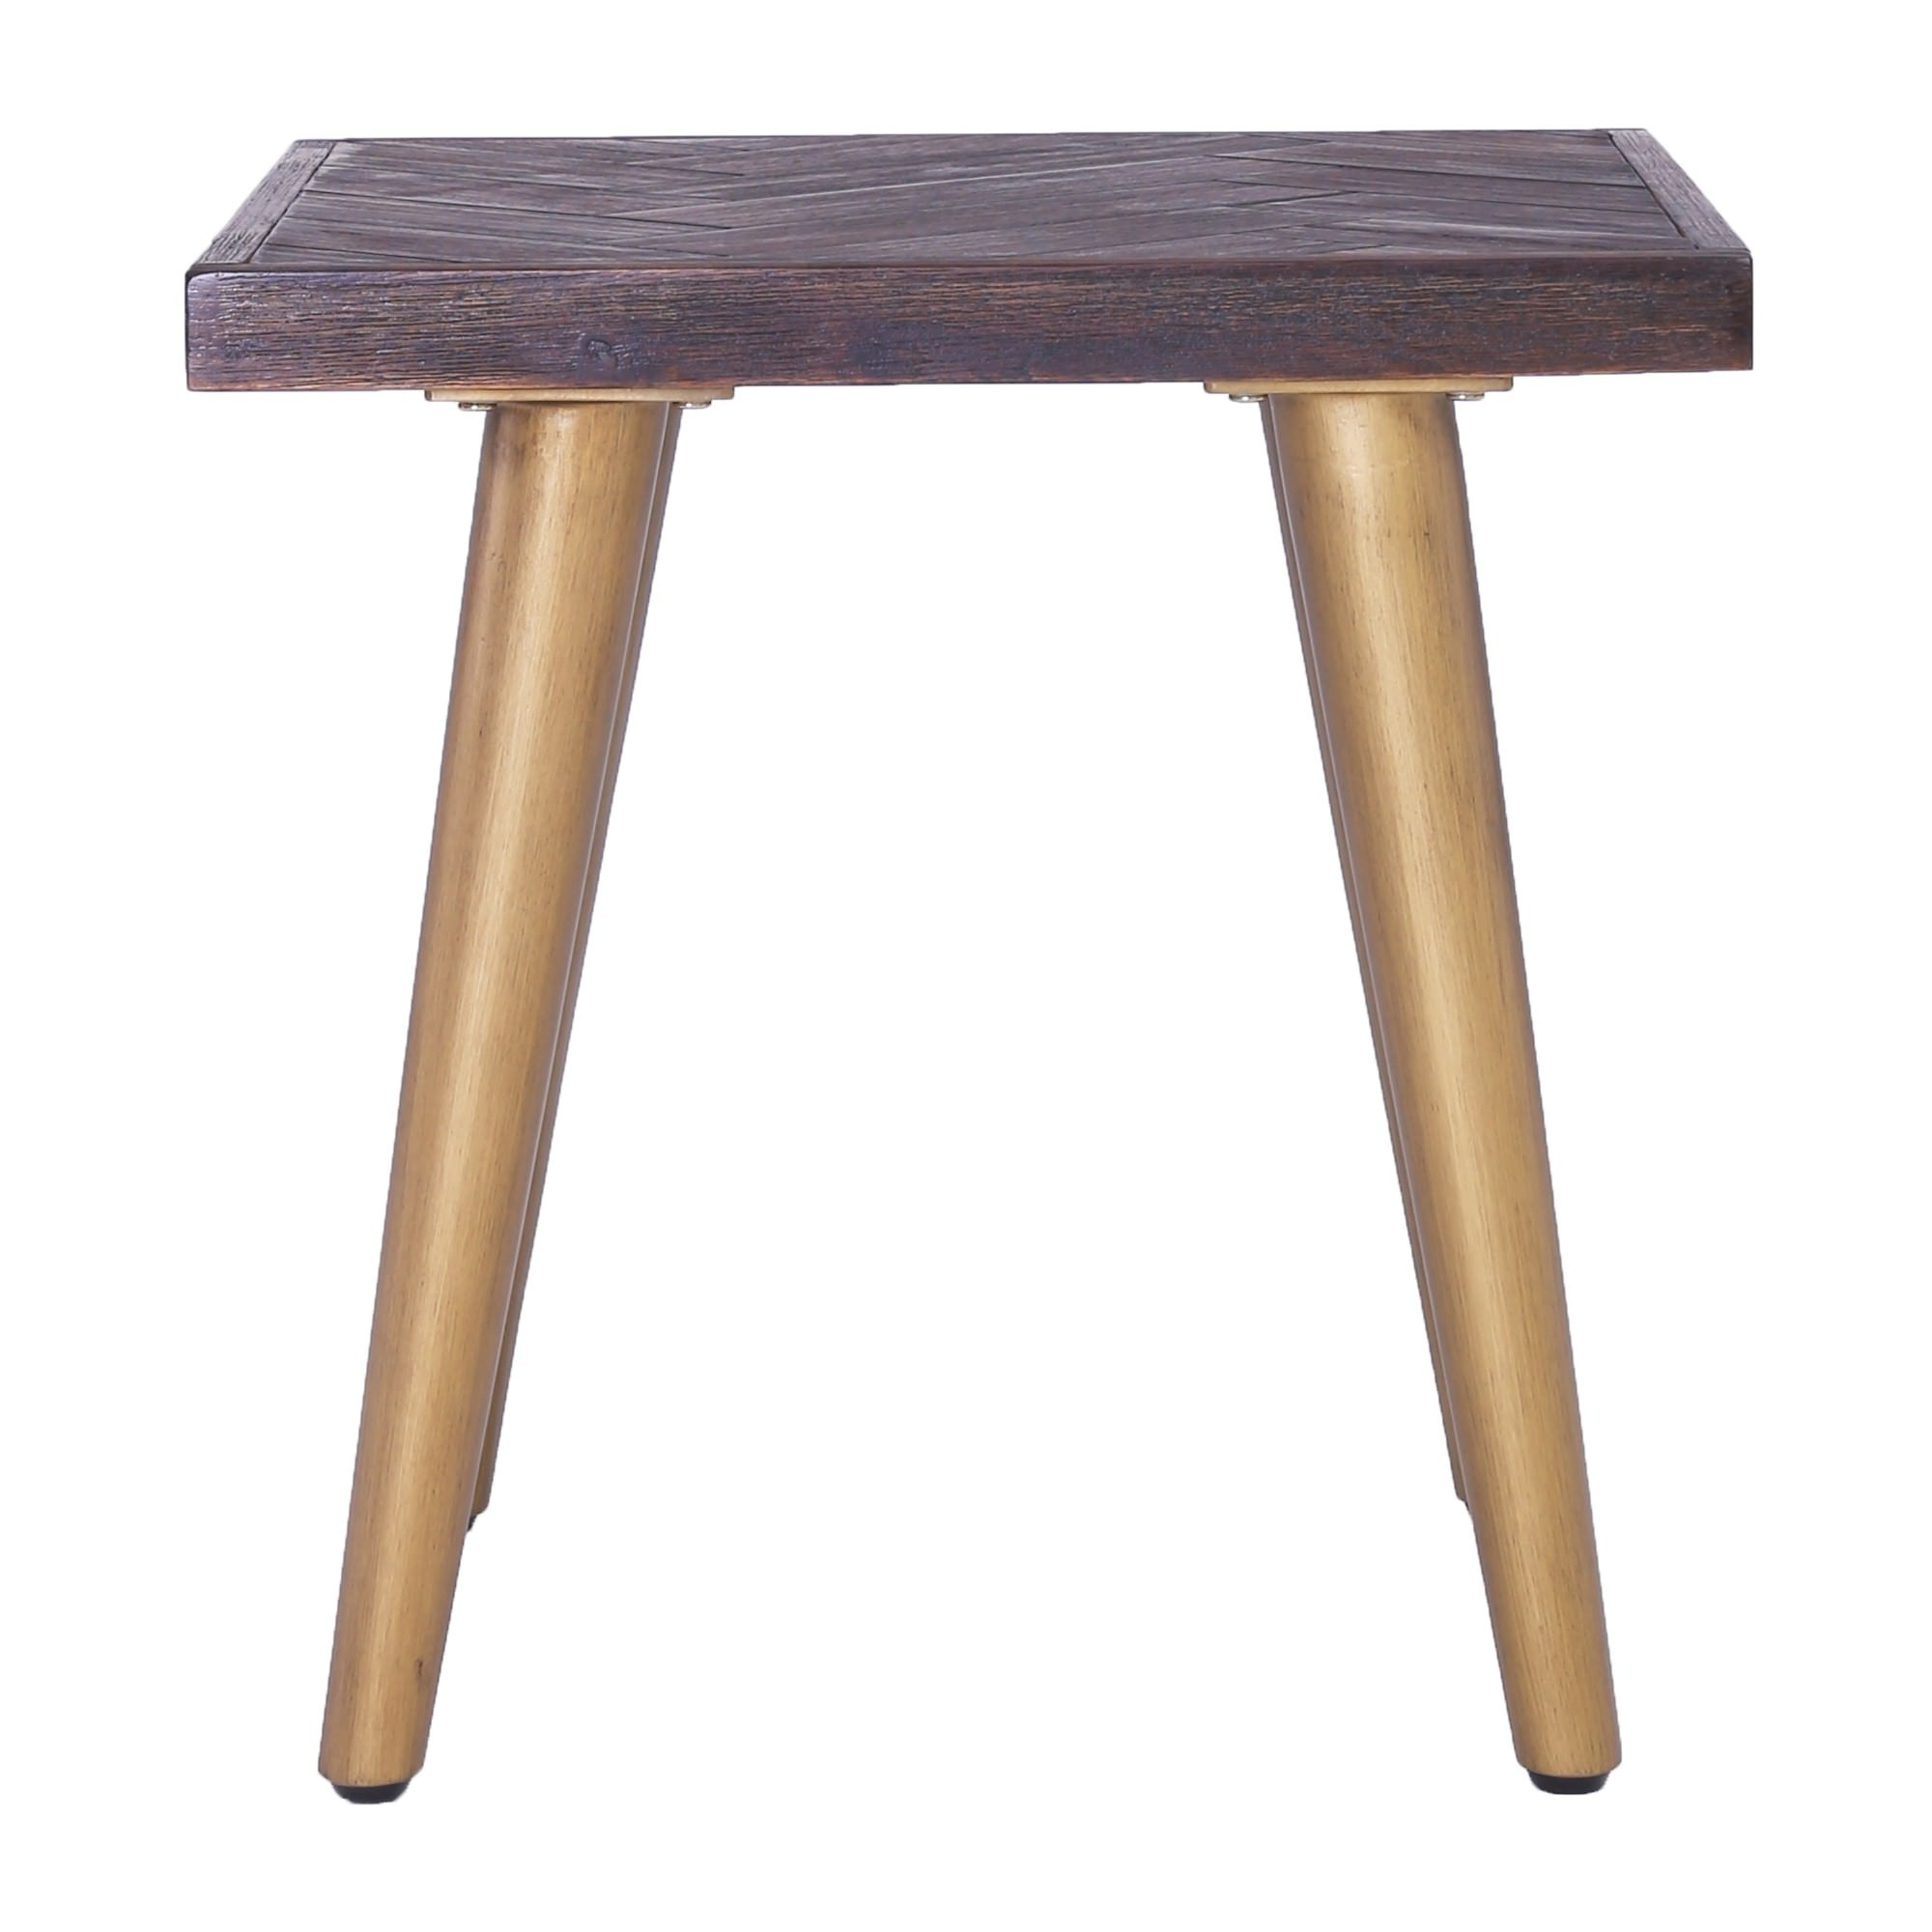 Sivan Commercial Grade Acacia Timber Topped Metal Side Table